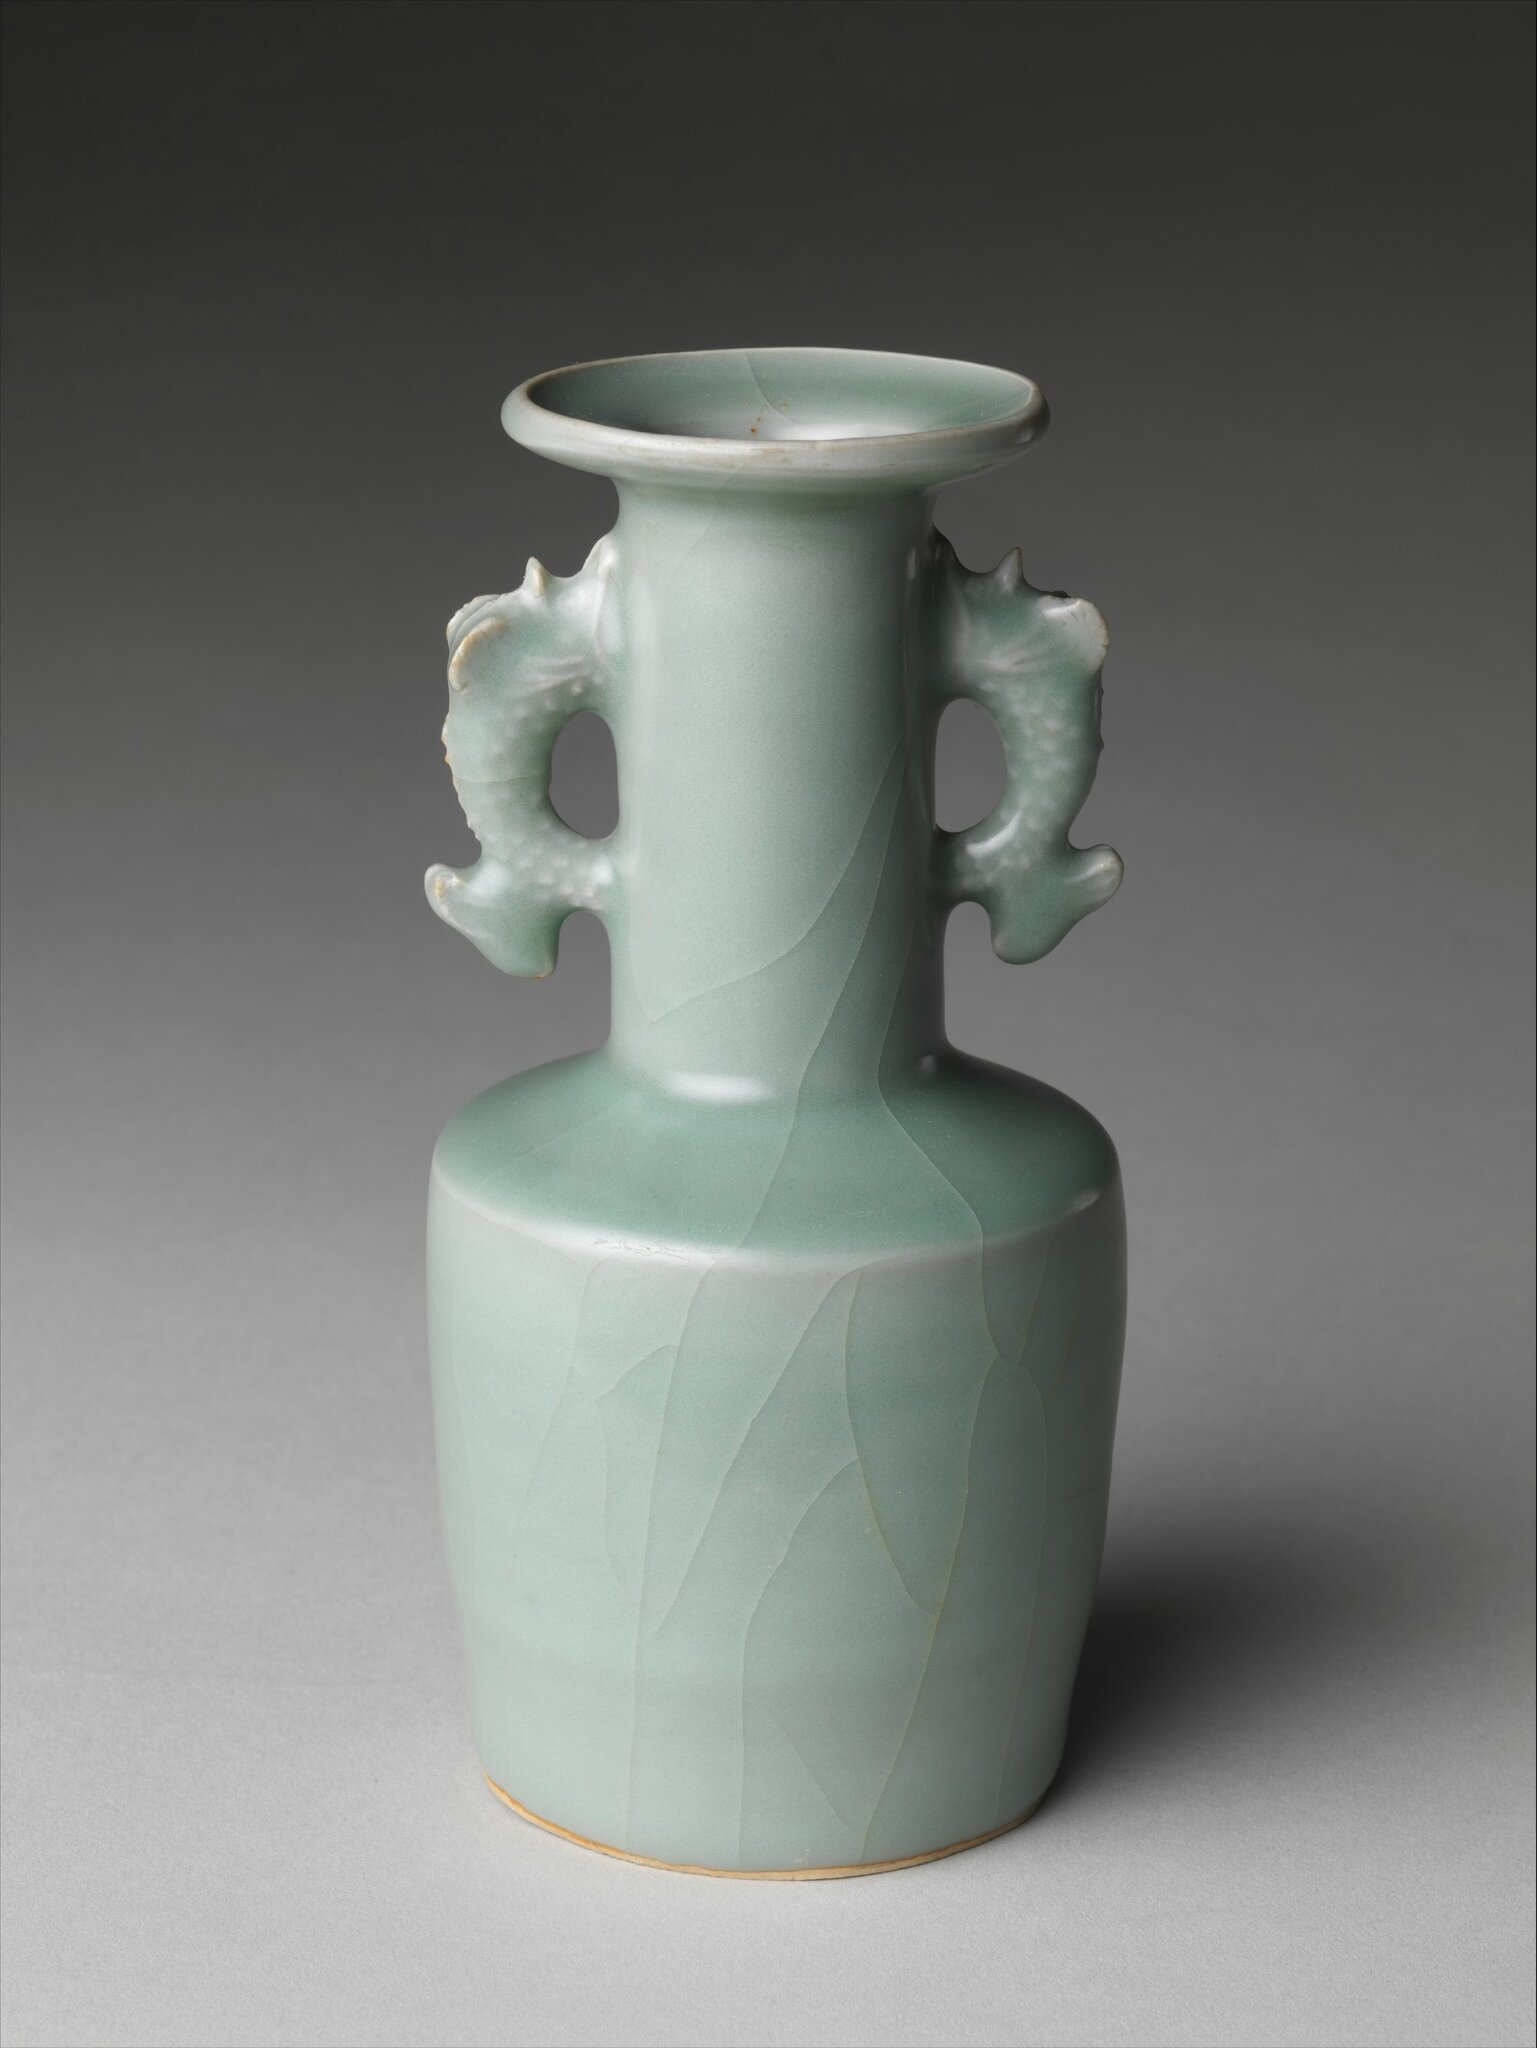 Vase with Dragonfish Handles, 12th–13th century, Southern Song dynasty (1127–1279)